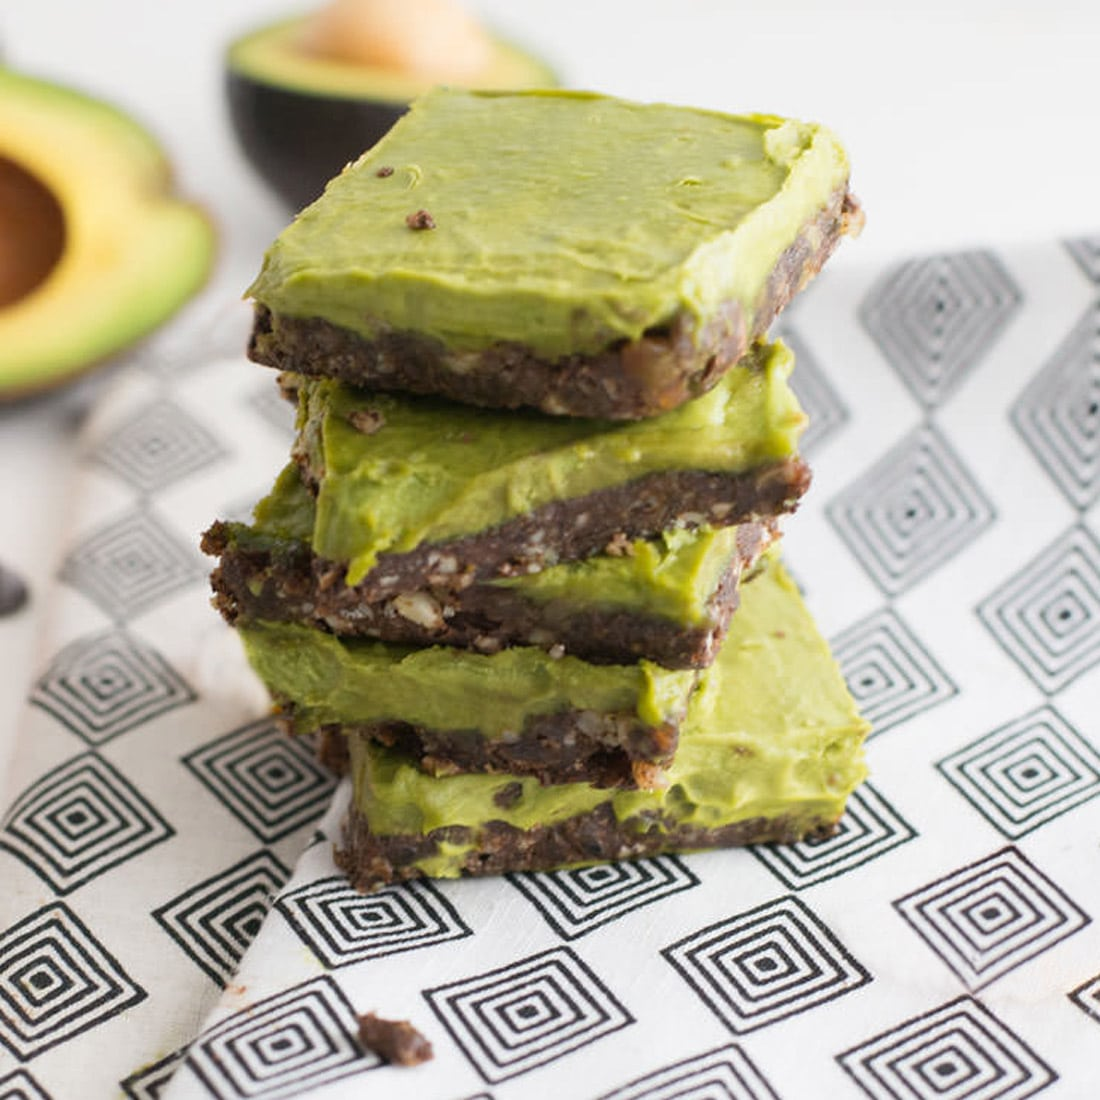 Chocolate Avocado Bars -- These creamy, chocolatey avocado bars are a healthy dessert without sacrificing flavor. Loaded with nutritious ingredients such as avocado, raw cacao, dates, and cashews. This dessert bar recipe is so delicious, you will not believe they are raw vegan, paleo, AND gluten free. | mindfulavocado